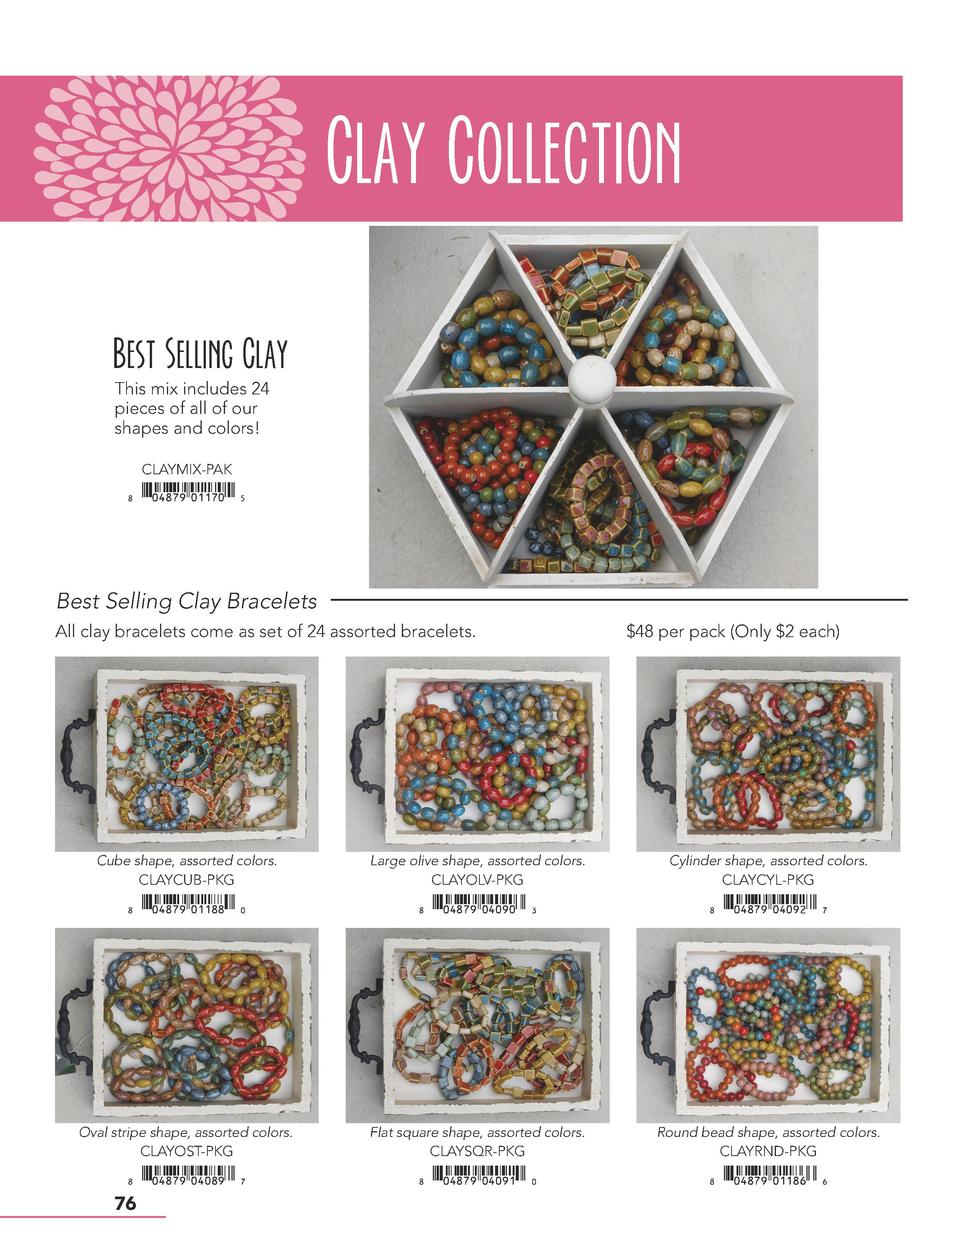 Clay Collection Best Selling Clay This mix includes 24 pieces of all of our shapes and colors  CLAYMIX-PAK    xiAEIHJy0117...